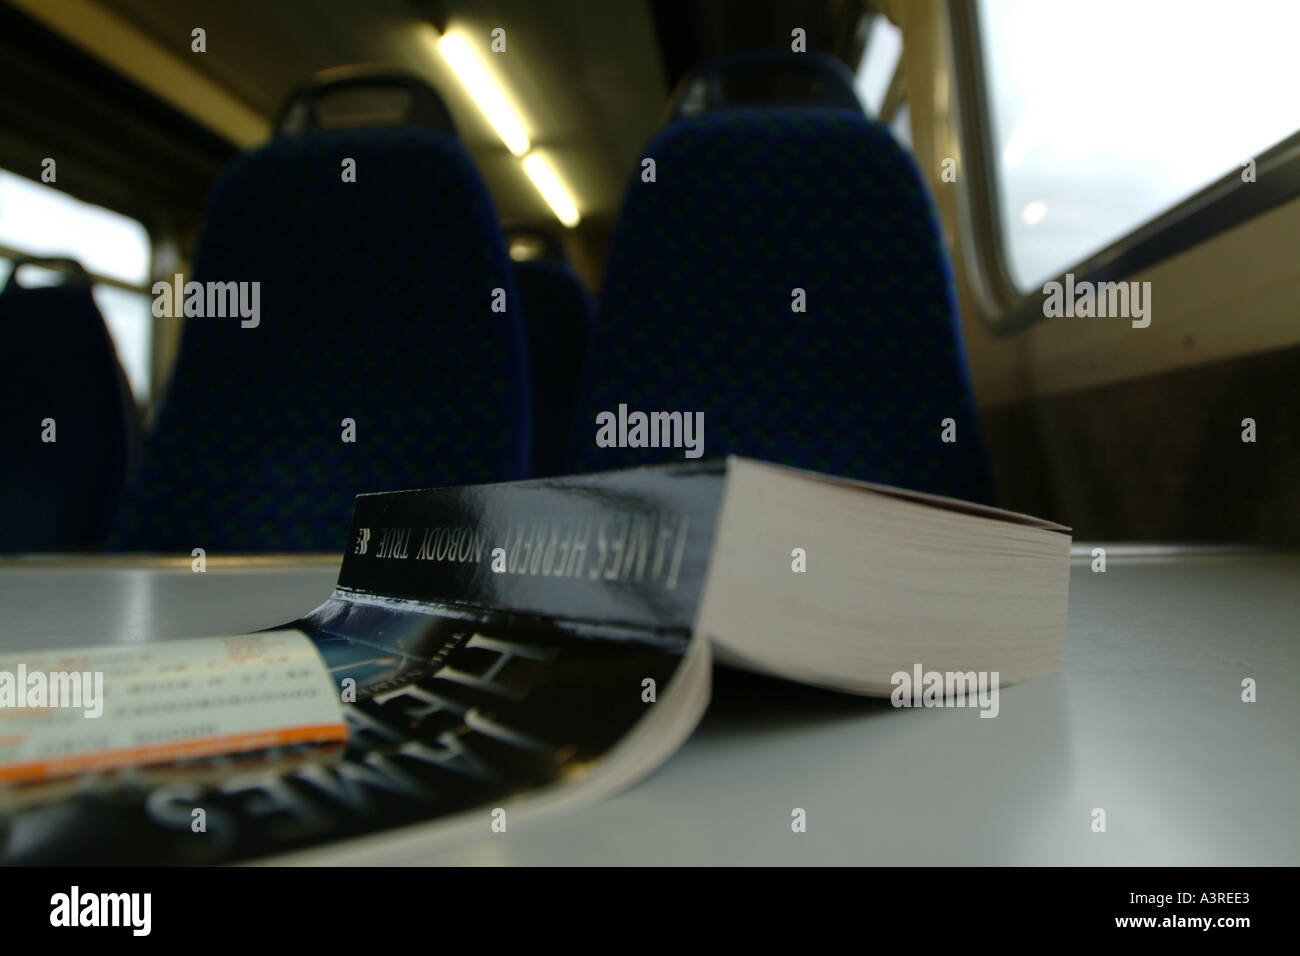 A book resting on the table of a train carriage - Stock Image